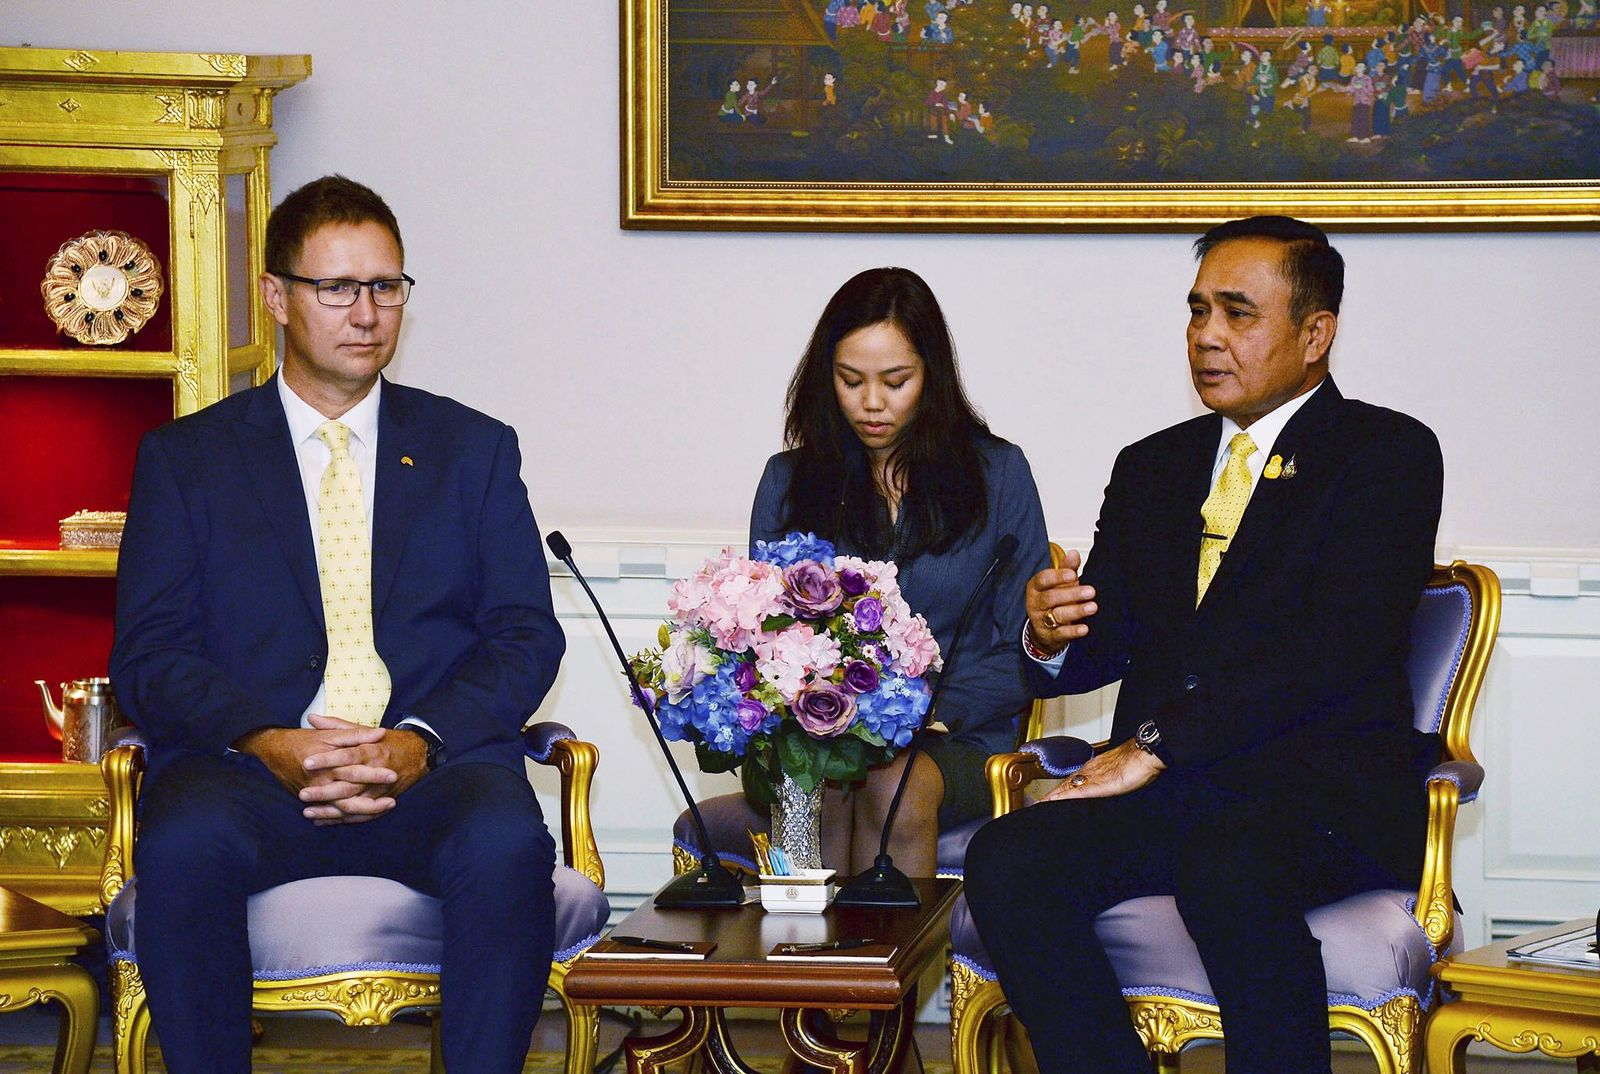 In this photo released by Government Spokesman Office, Richard Harris, left, an Australian member of the Thai cave rescue team, listens to Thailand's Prime Minister Prayuth Chan-ocha, right, during a meeting after receiving the Member of the Most Admirable Order of the Direkgunabhorn during the royal decoration ceremony at the Royal Thai Government House in Bangkok, Thailand, Friday, April 19, 2019. (Government Spokesman Office via AP)